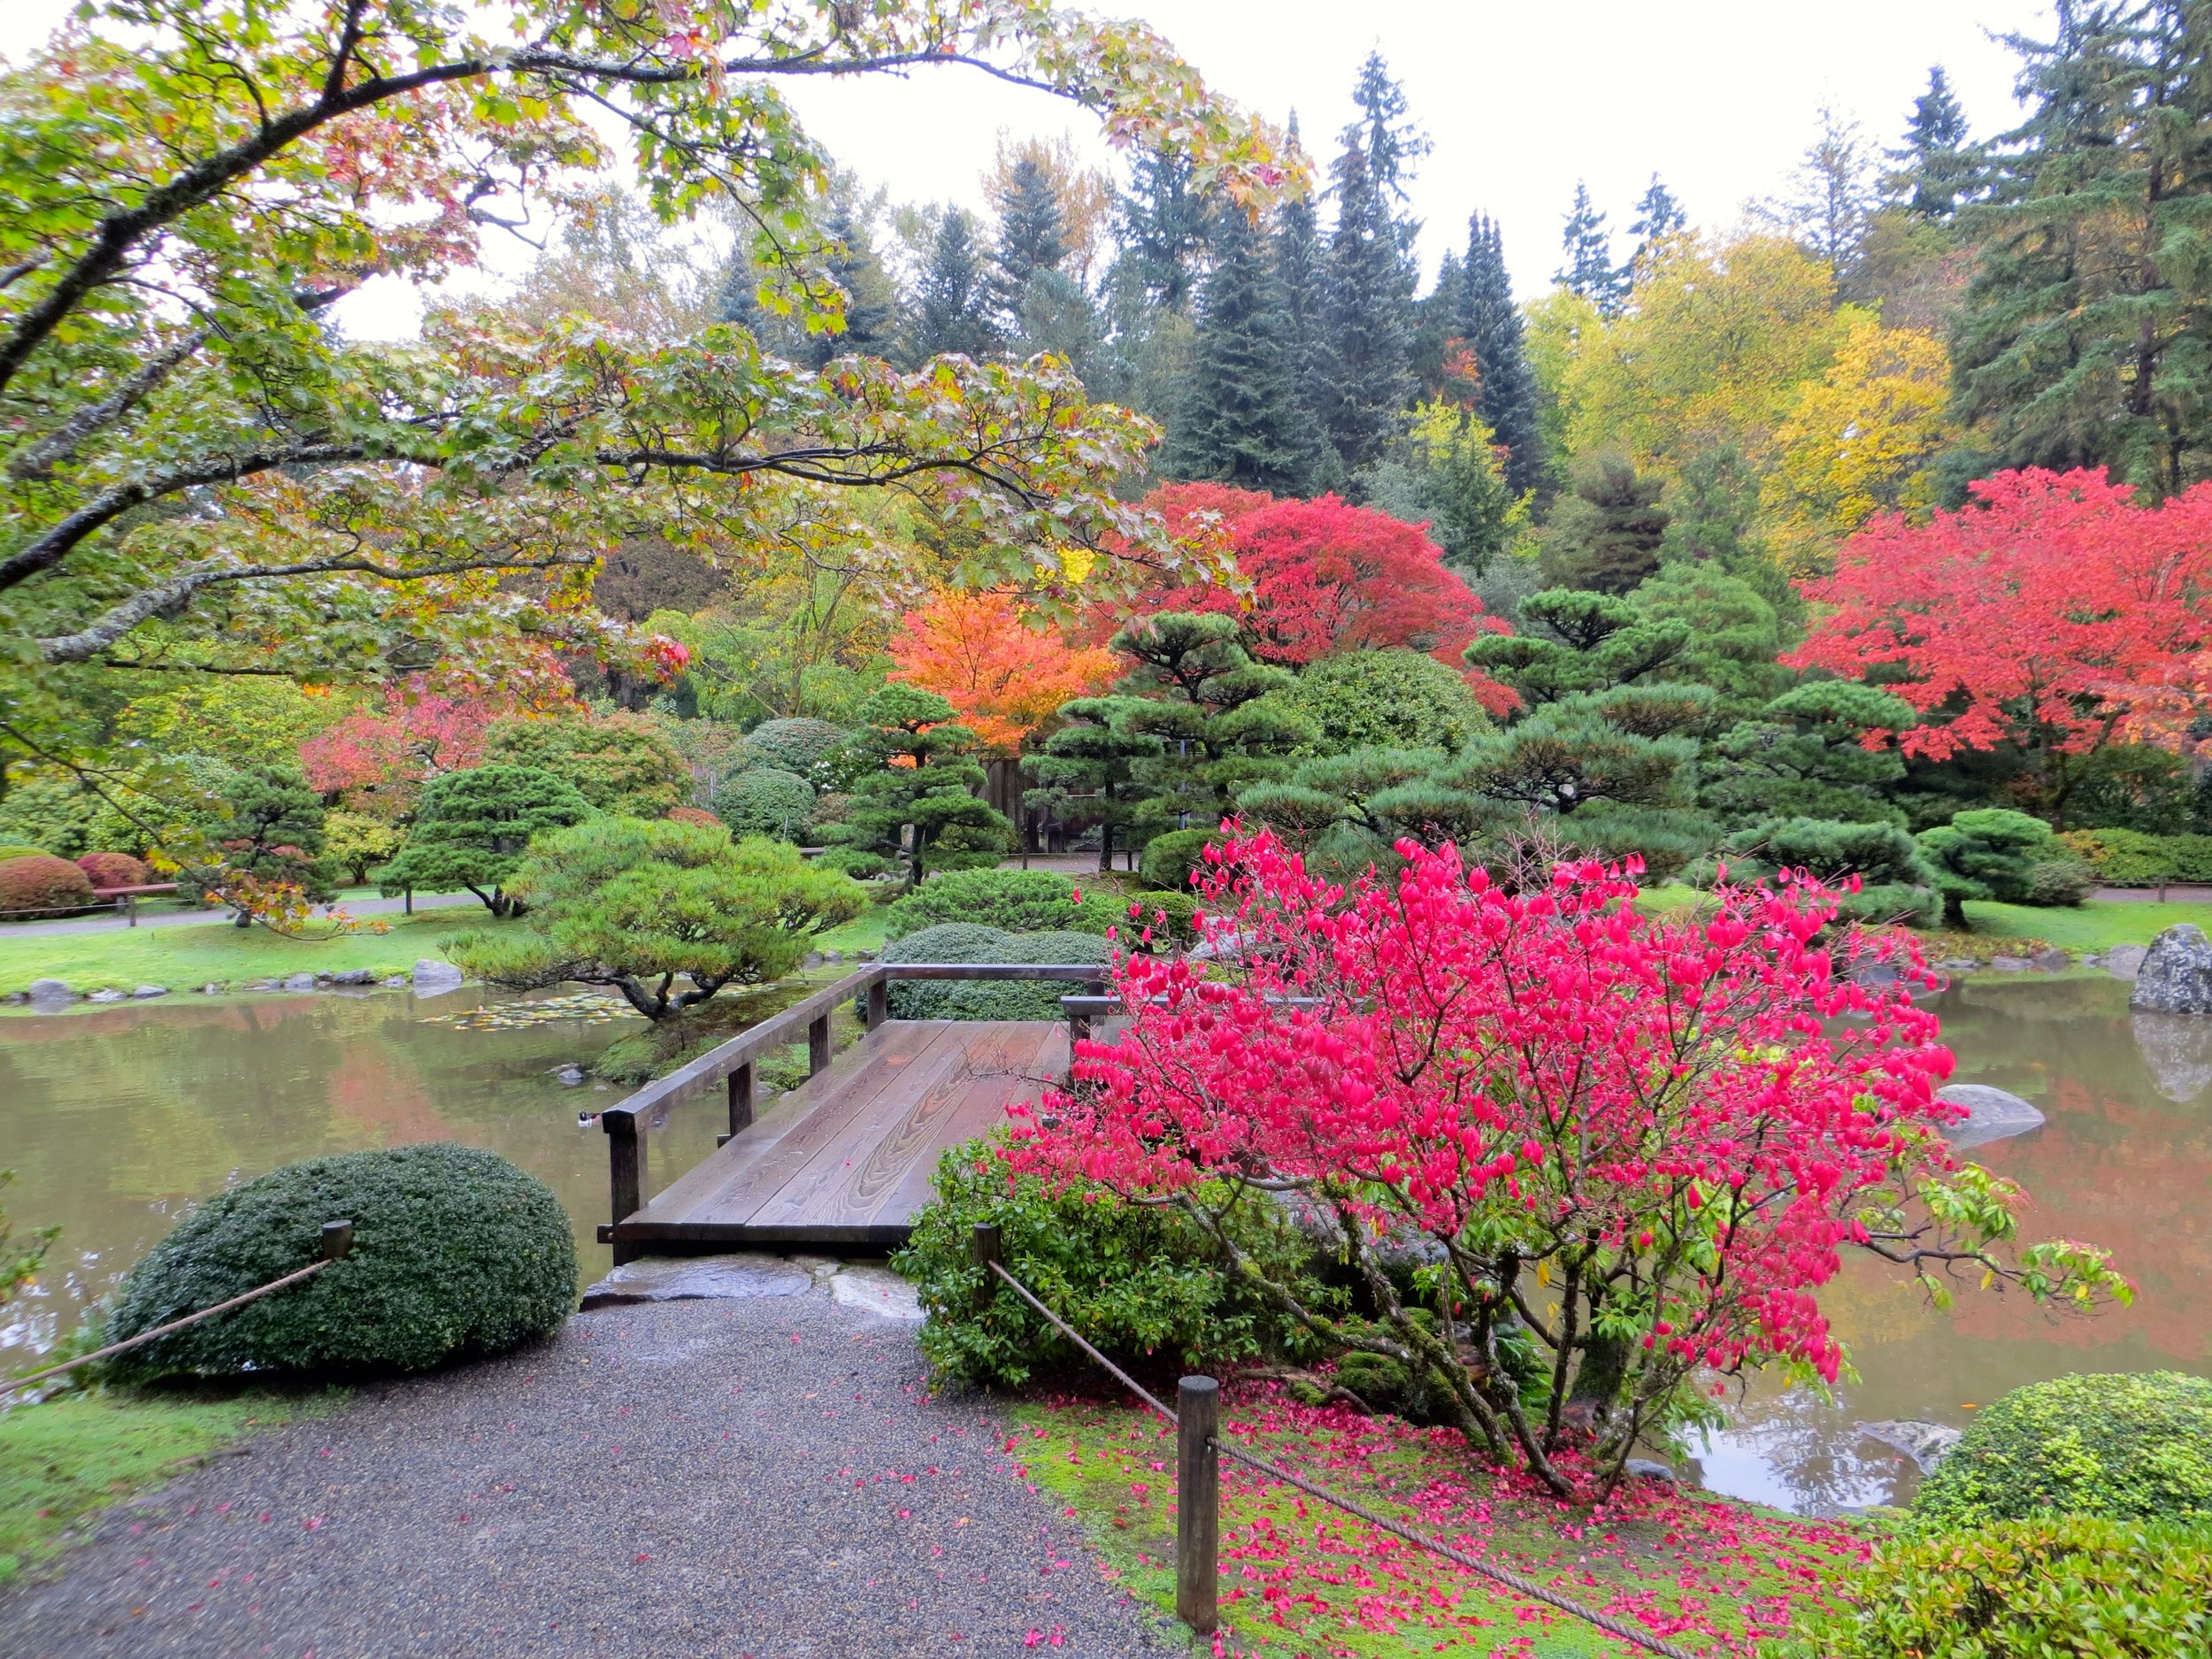 Euonymus alatus, also known as burning bush, adds striking color to the Japanese Garden.